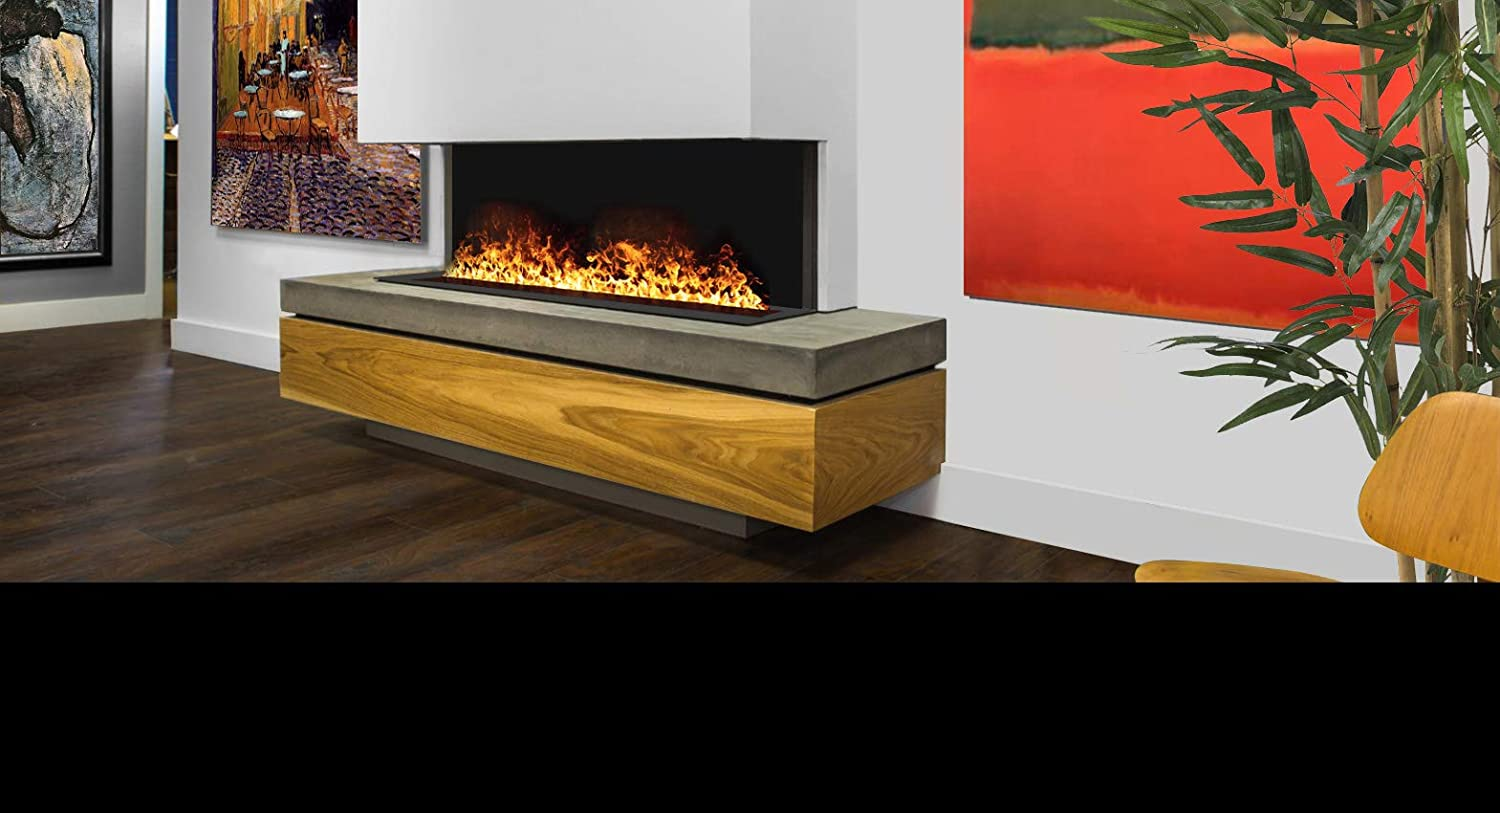 Afirewater Premium Water Vapor Fireplace Remote Control Flame 30 Realistic Flame Colors Ios Android App Enabled Ul Listed Awp 20 50 20 Unit Awp 40 100 40 Unit Awp 60 150 60 Unit 40 Inch Home